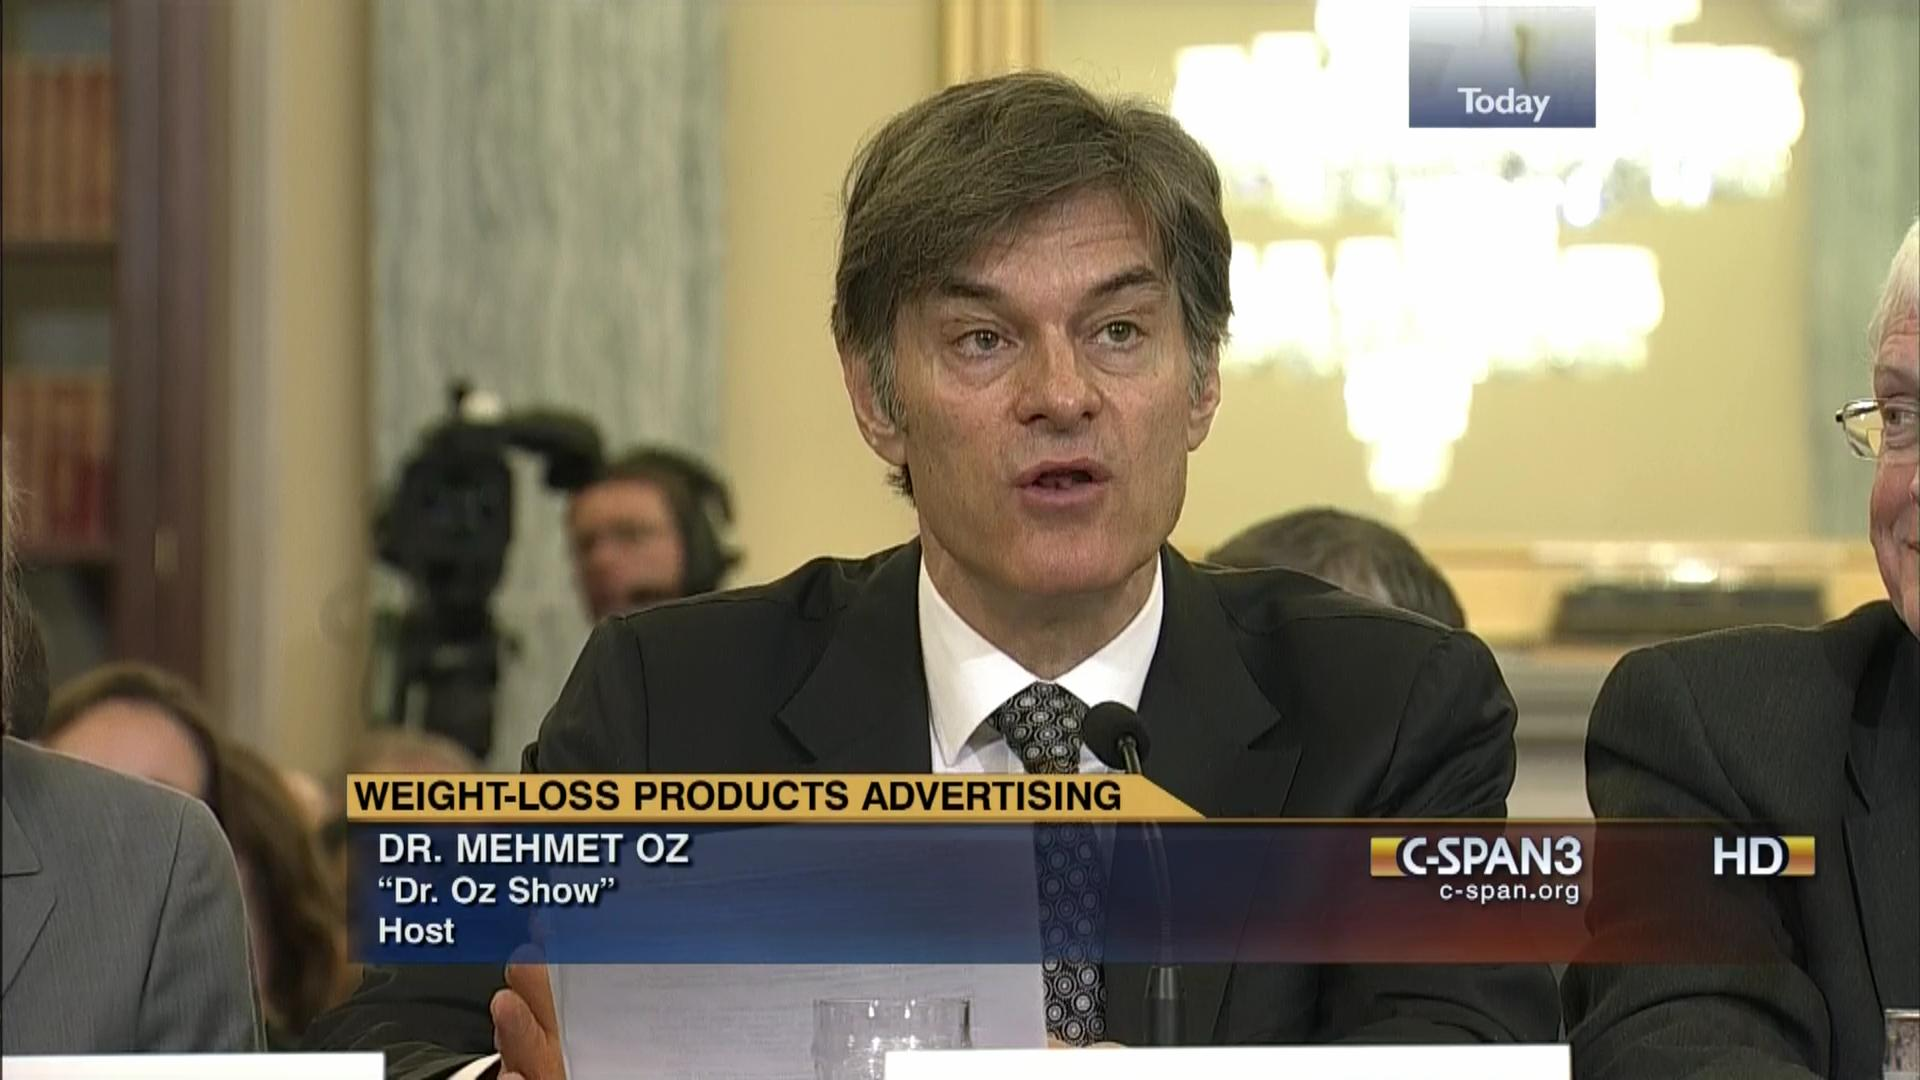 Weight Loss Product Advertising Jun 17 2014 Video C Span Org